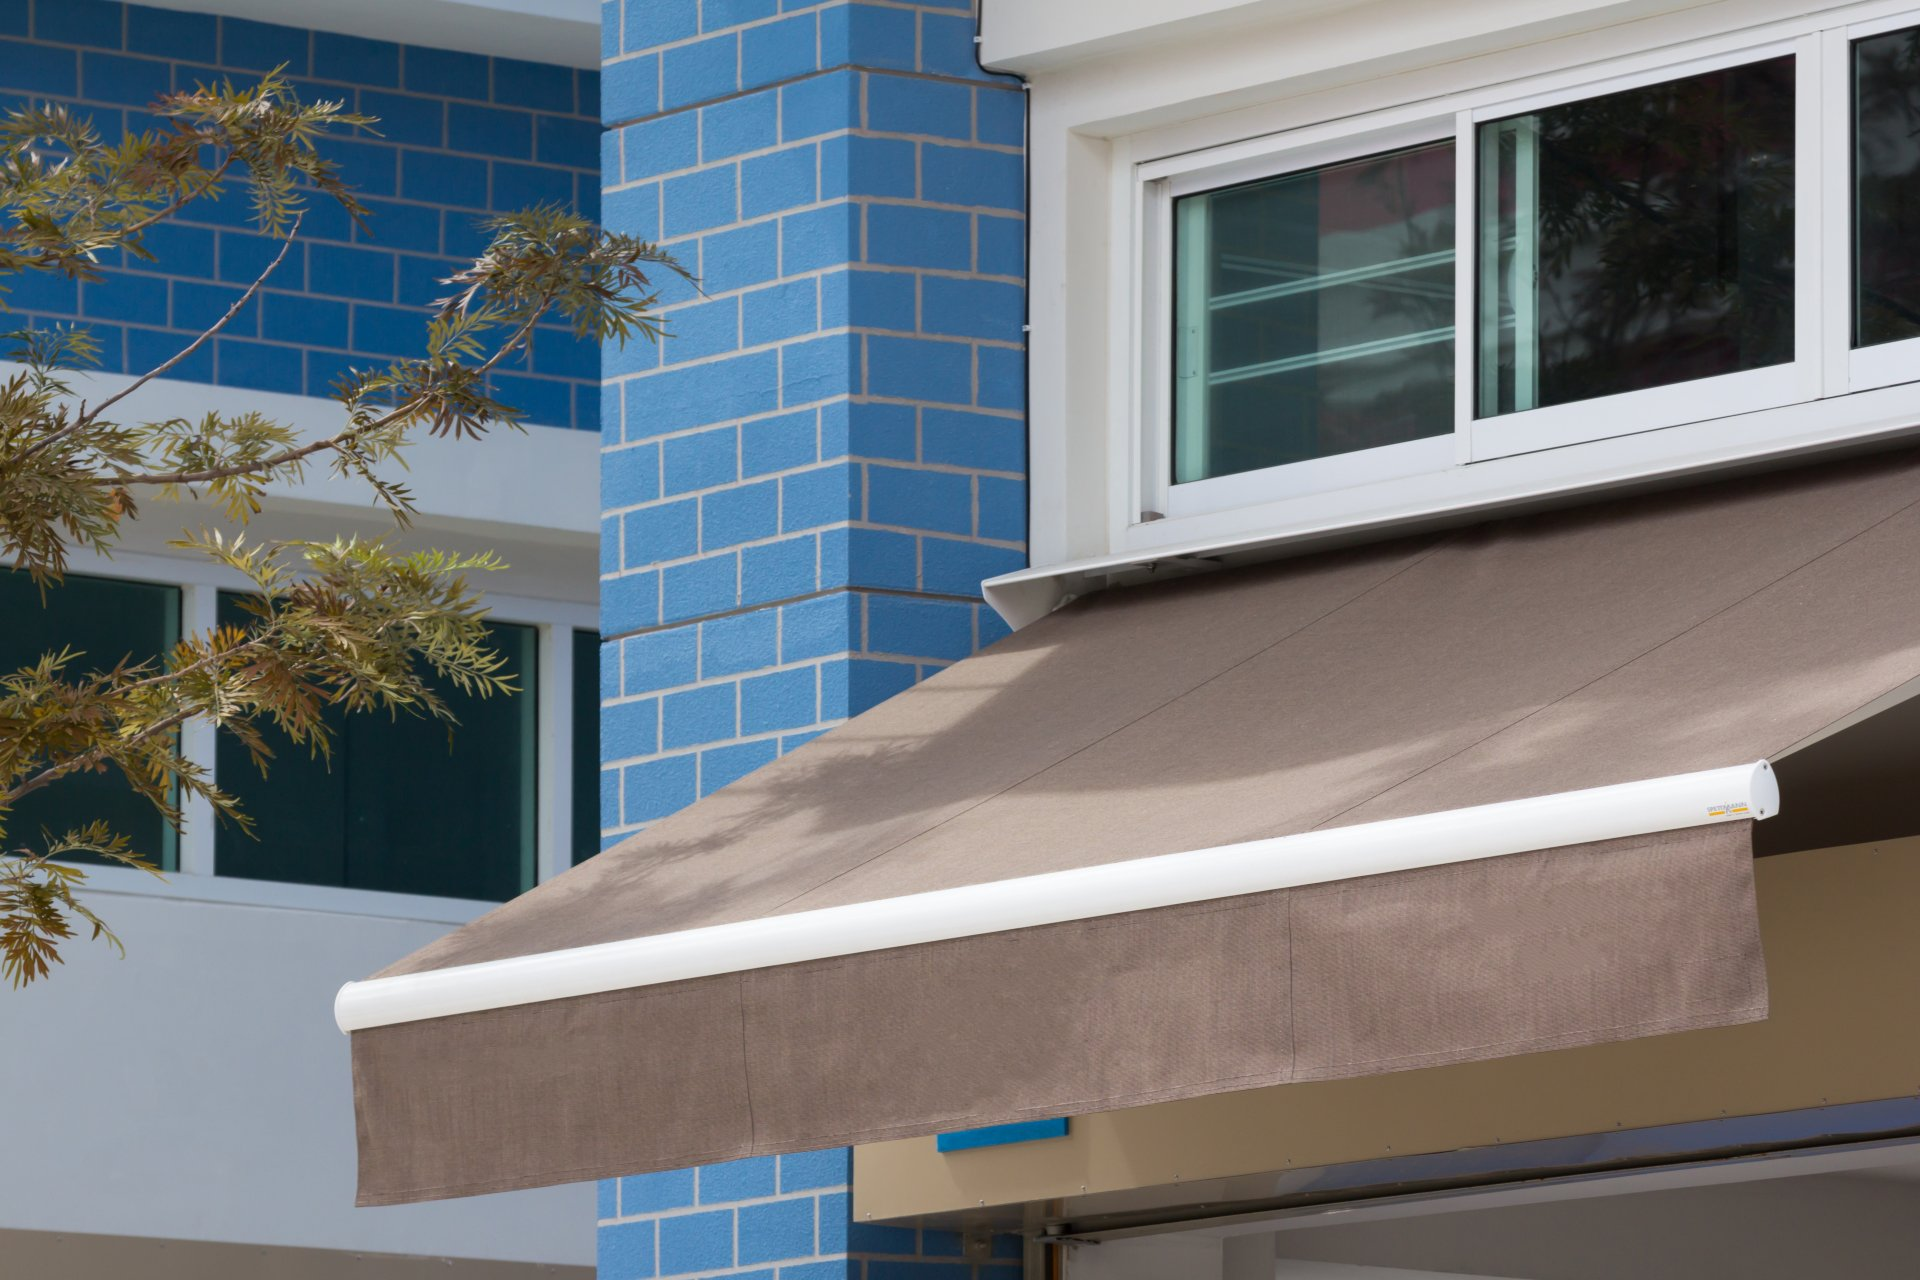 Custom Retractable Awnings for Your Home or Business ...